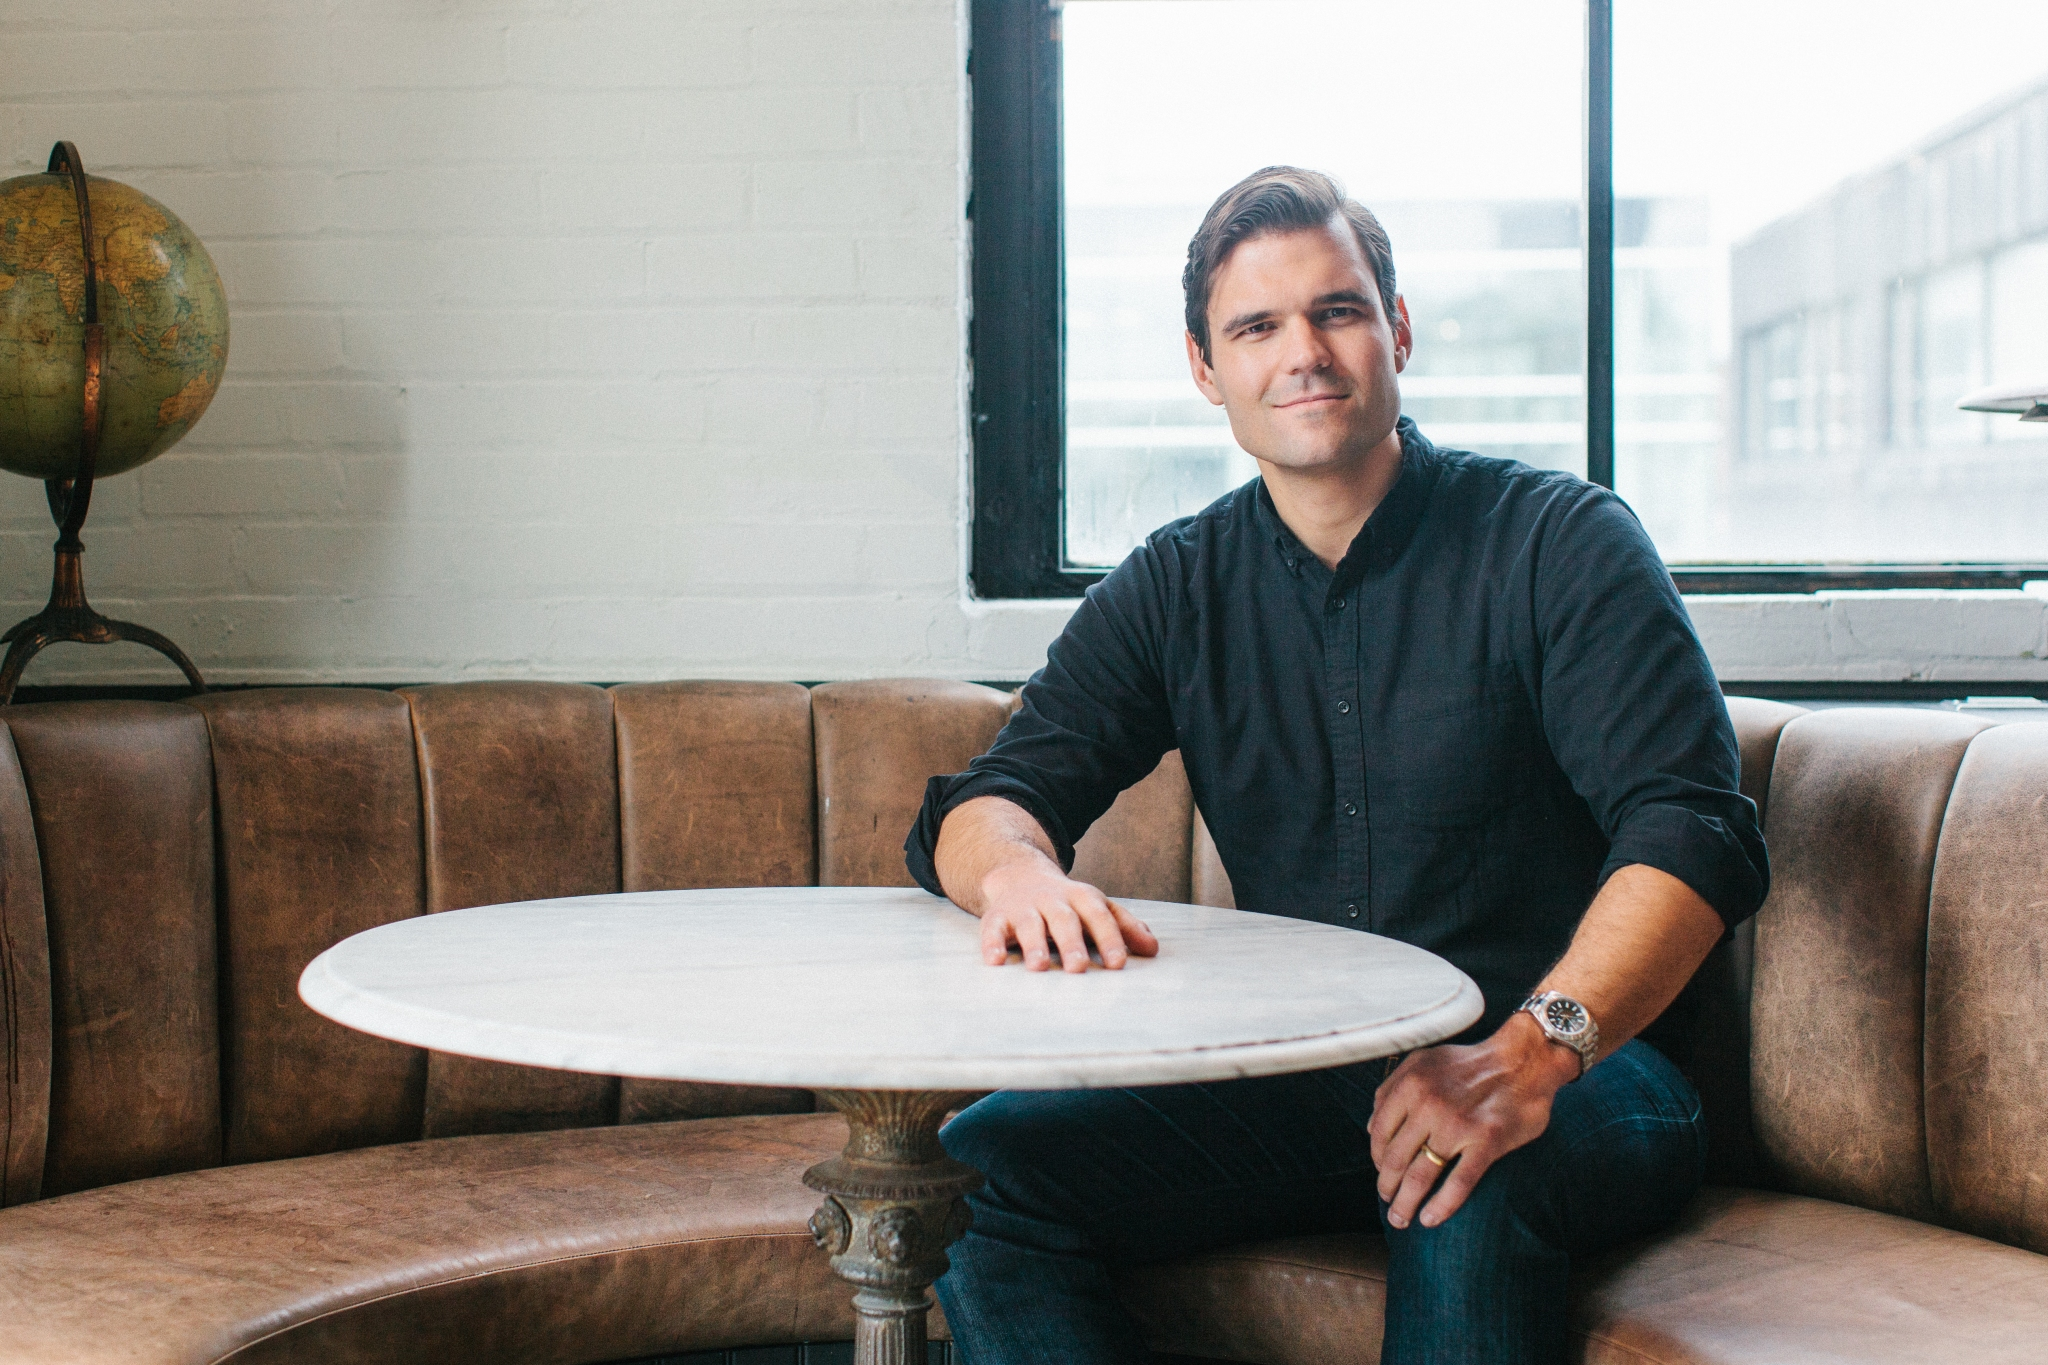 Alex Tapscott co-authored 'Blockchain Revolution,' which details how the technology behind Bitcoin and other cryptocurrencies could change many industries.